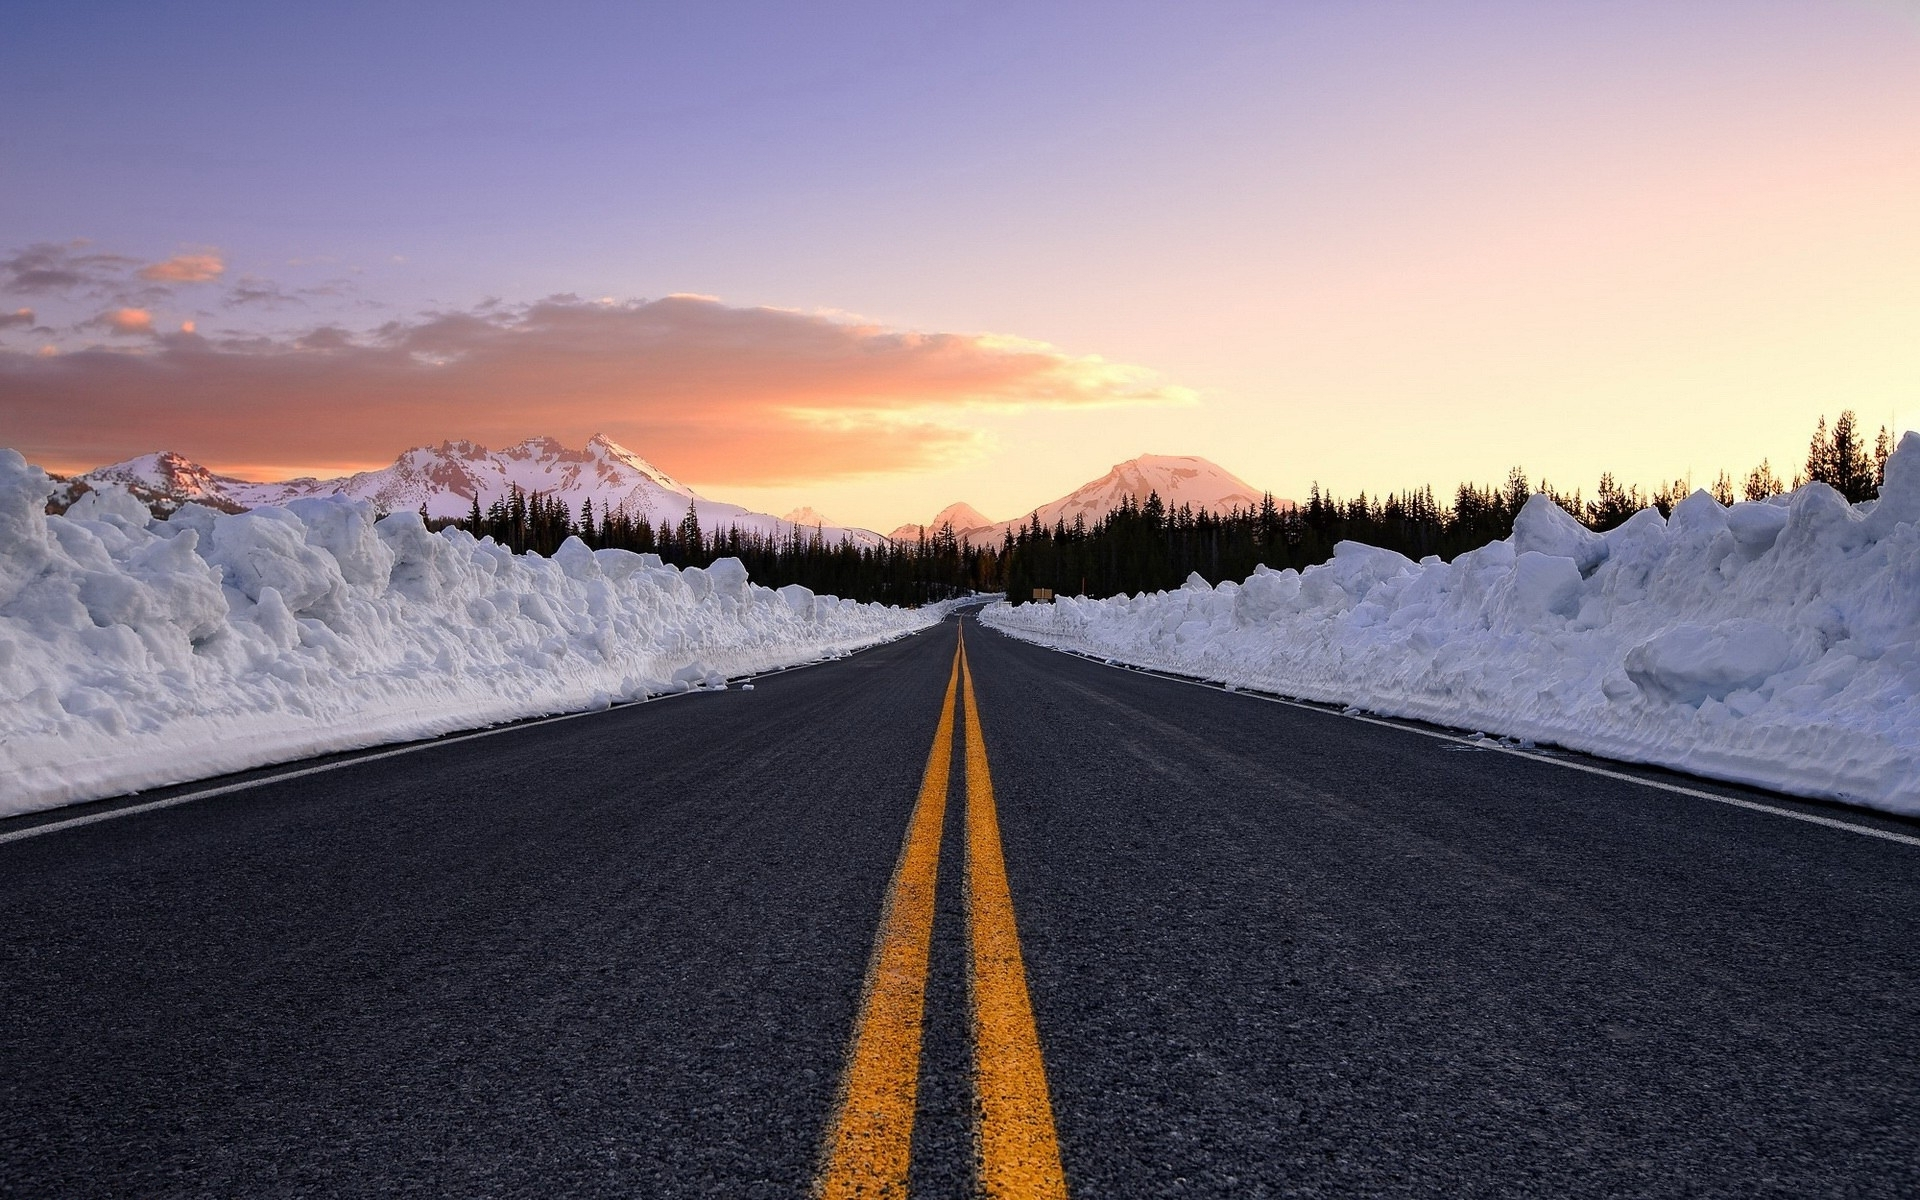 Road Snow Wall Trees Sunset Wallpapers Road Snow Wall